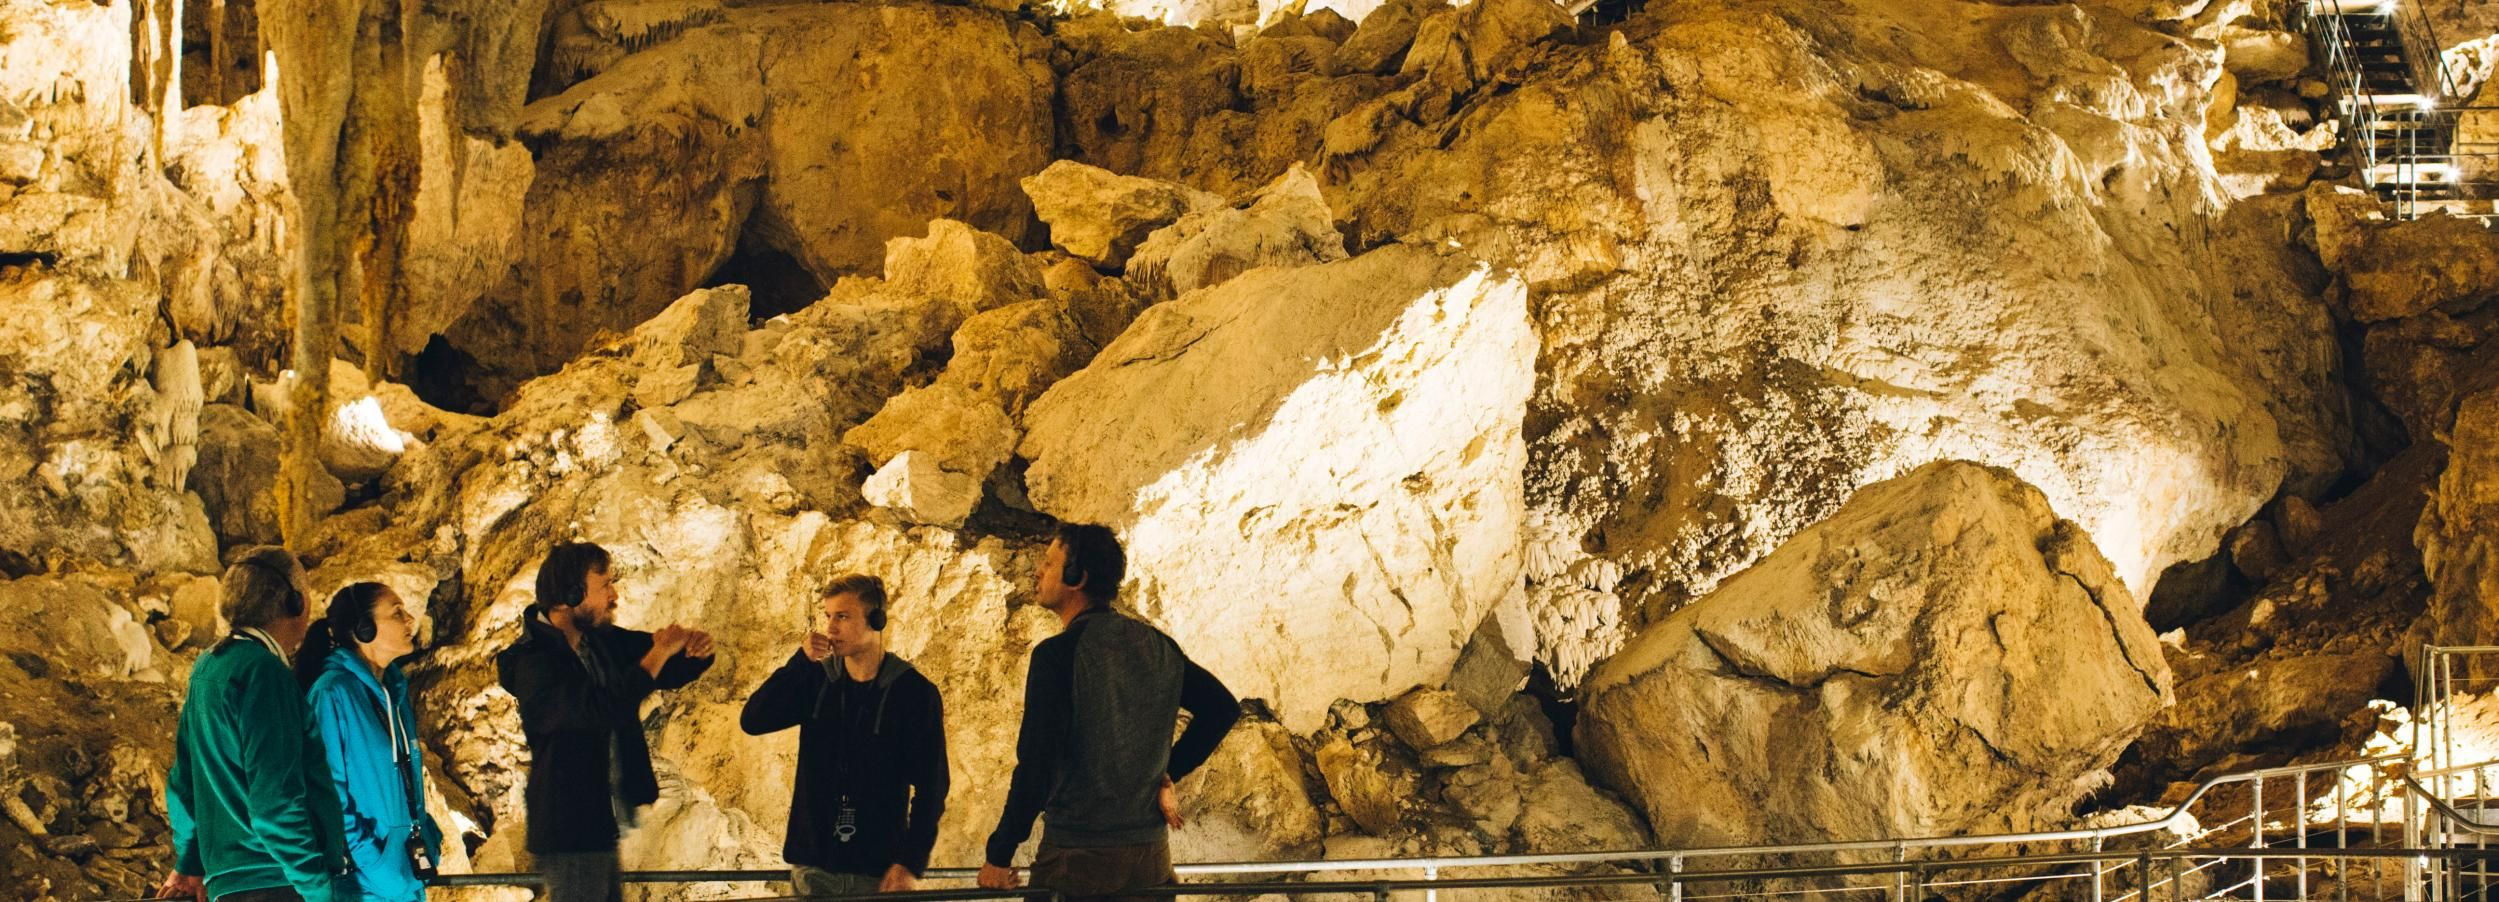 Margaret River: Self-Guided Audio Tour of Mammoth Cave